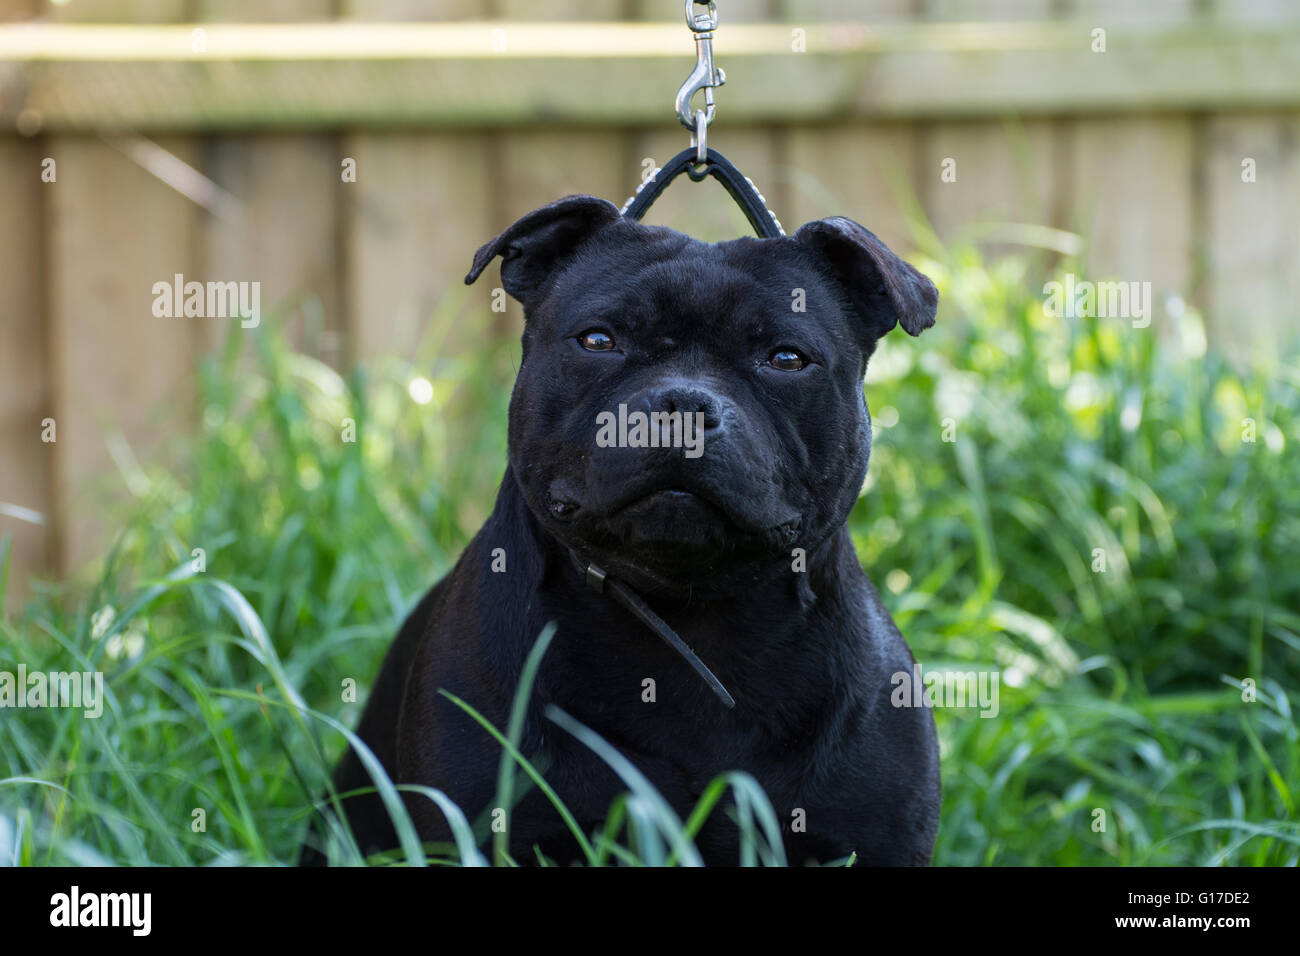 A Staffordshire Bull Terrier in a show pose. - Stock Image